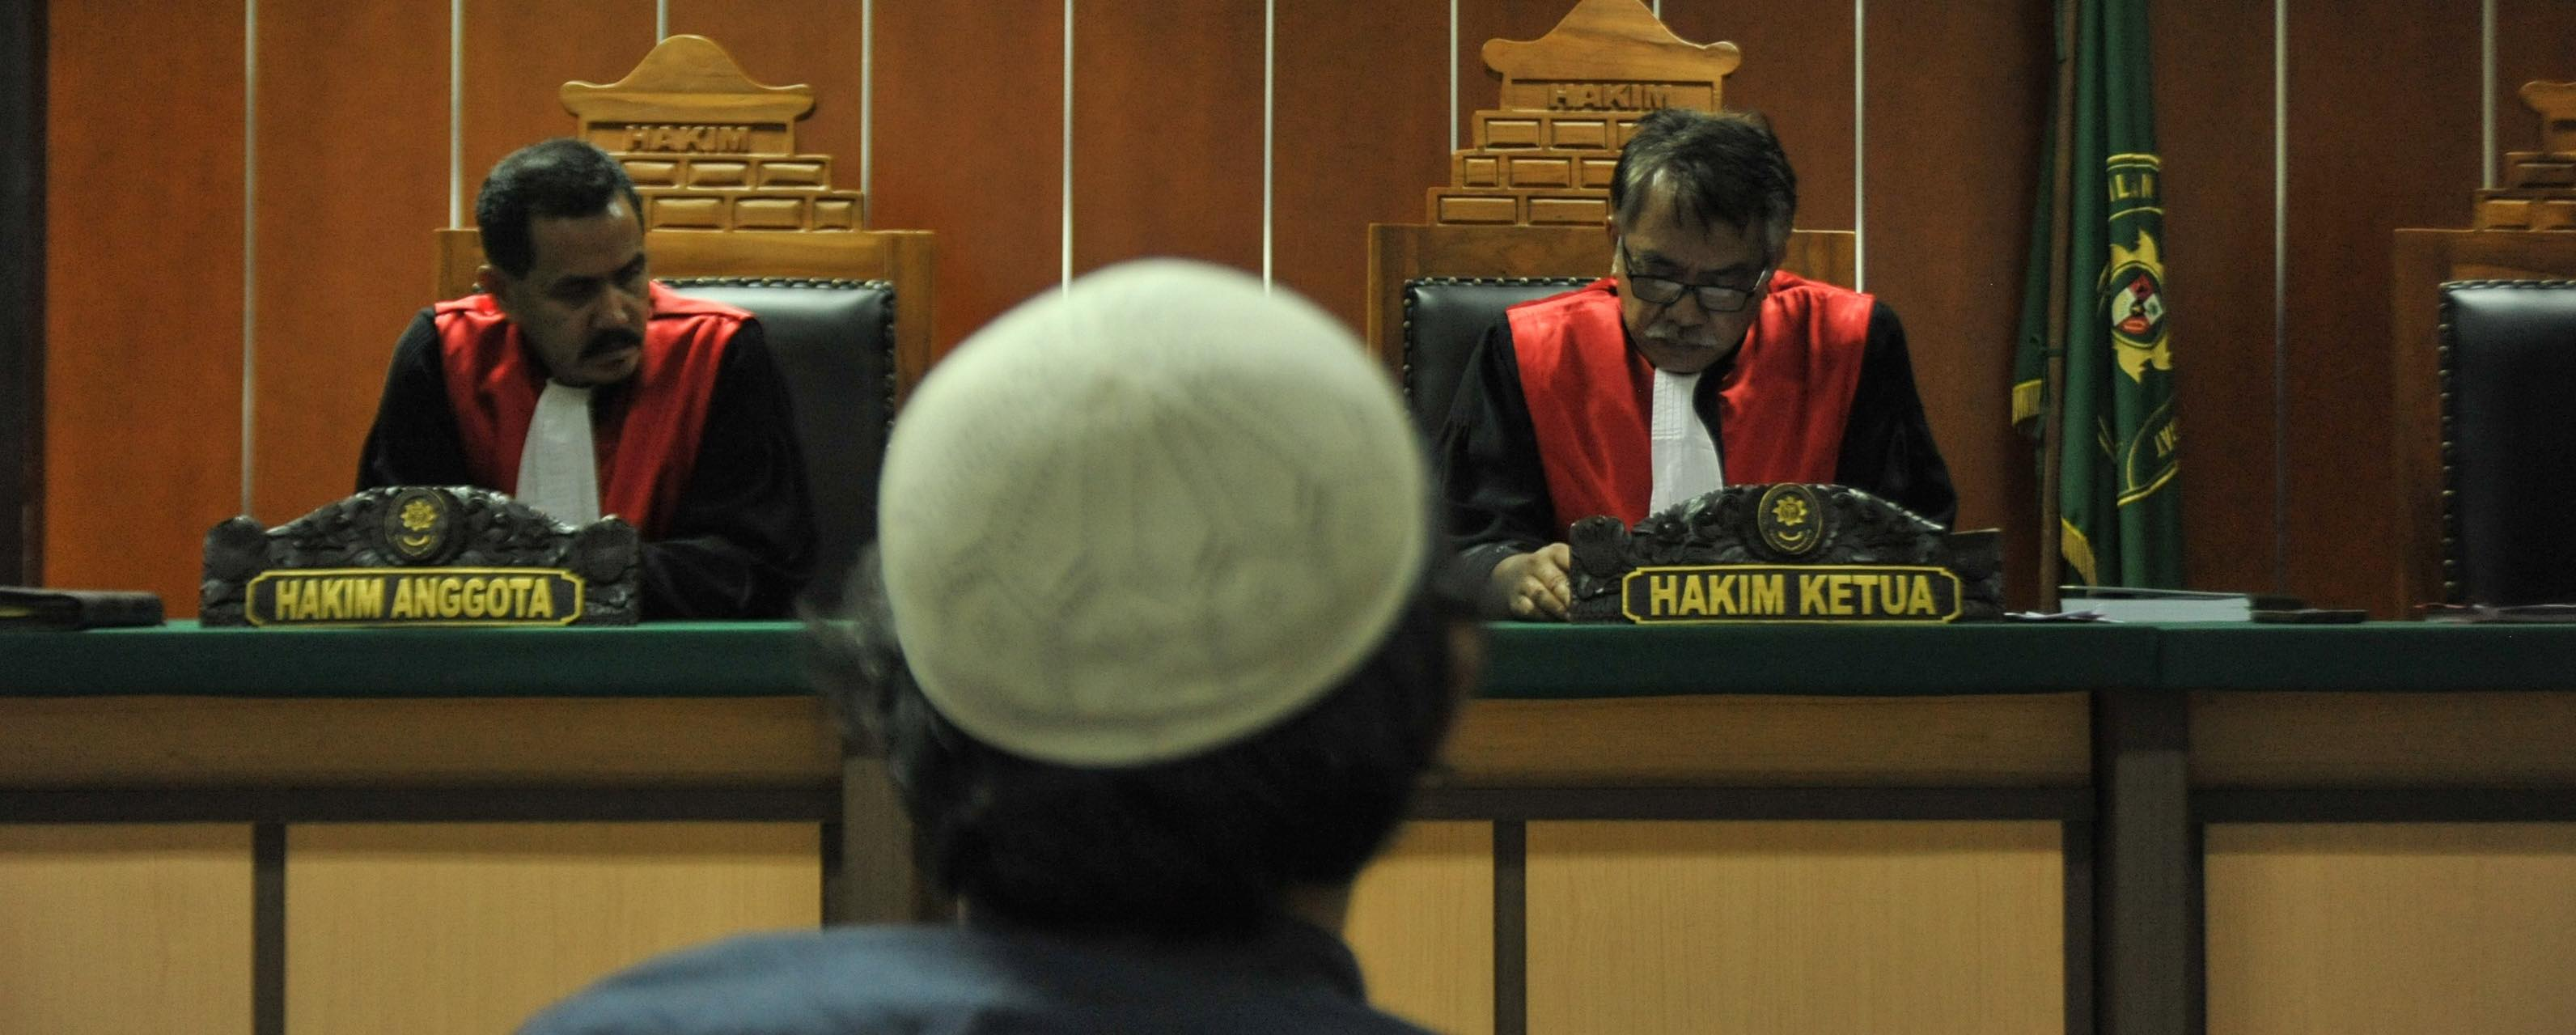 Indonesian arms smuggler Suryadi Mas'ud is sentenced in West Jakarta District Court on 6 February (Photo: Anton Raharjo/Getty)